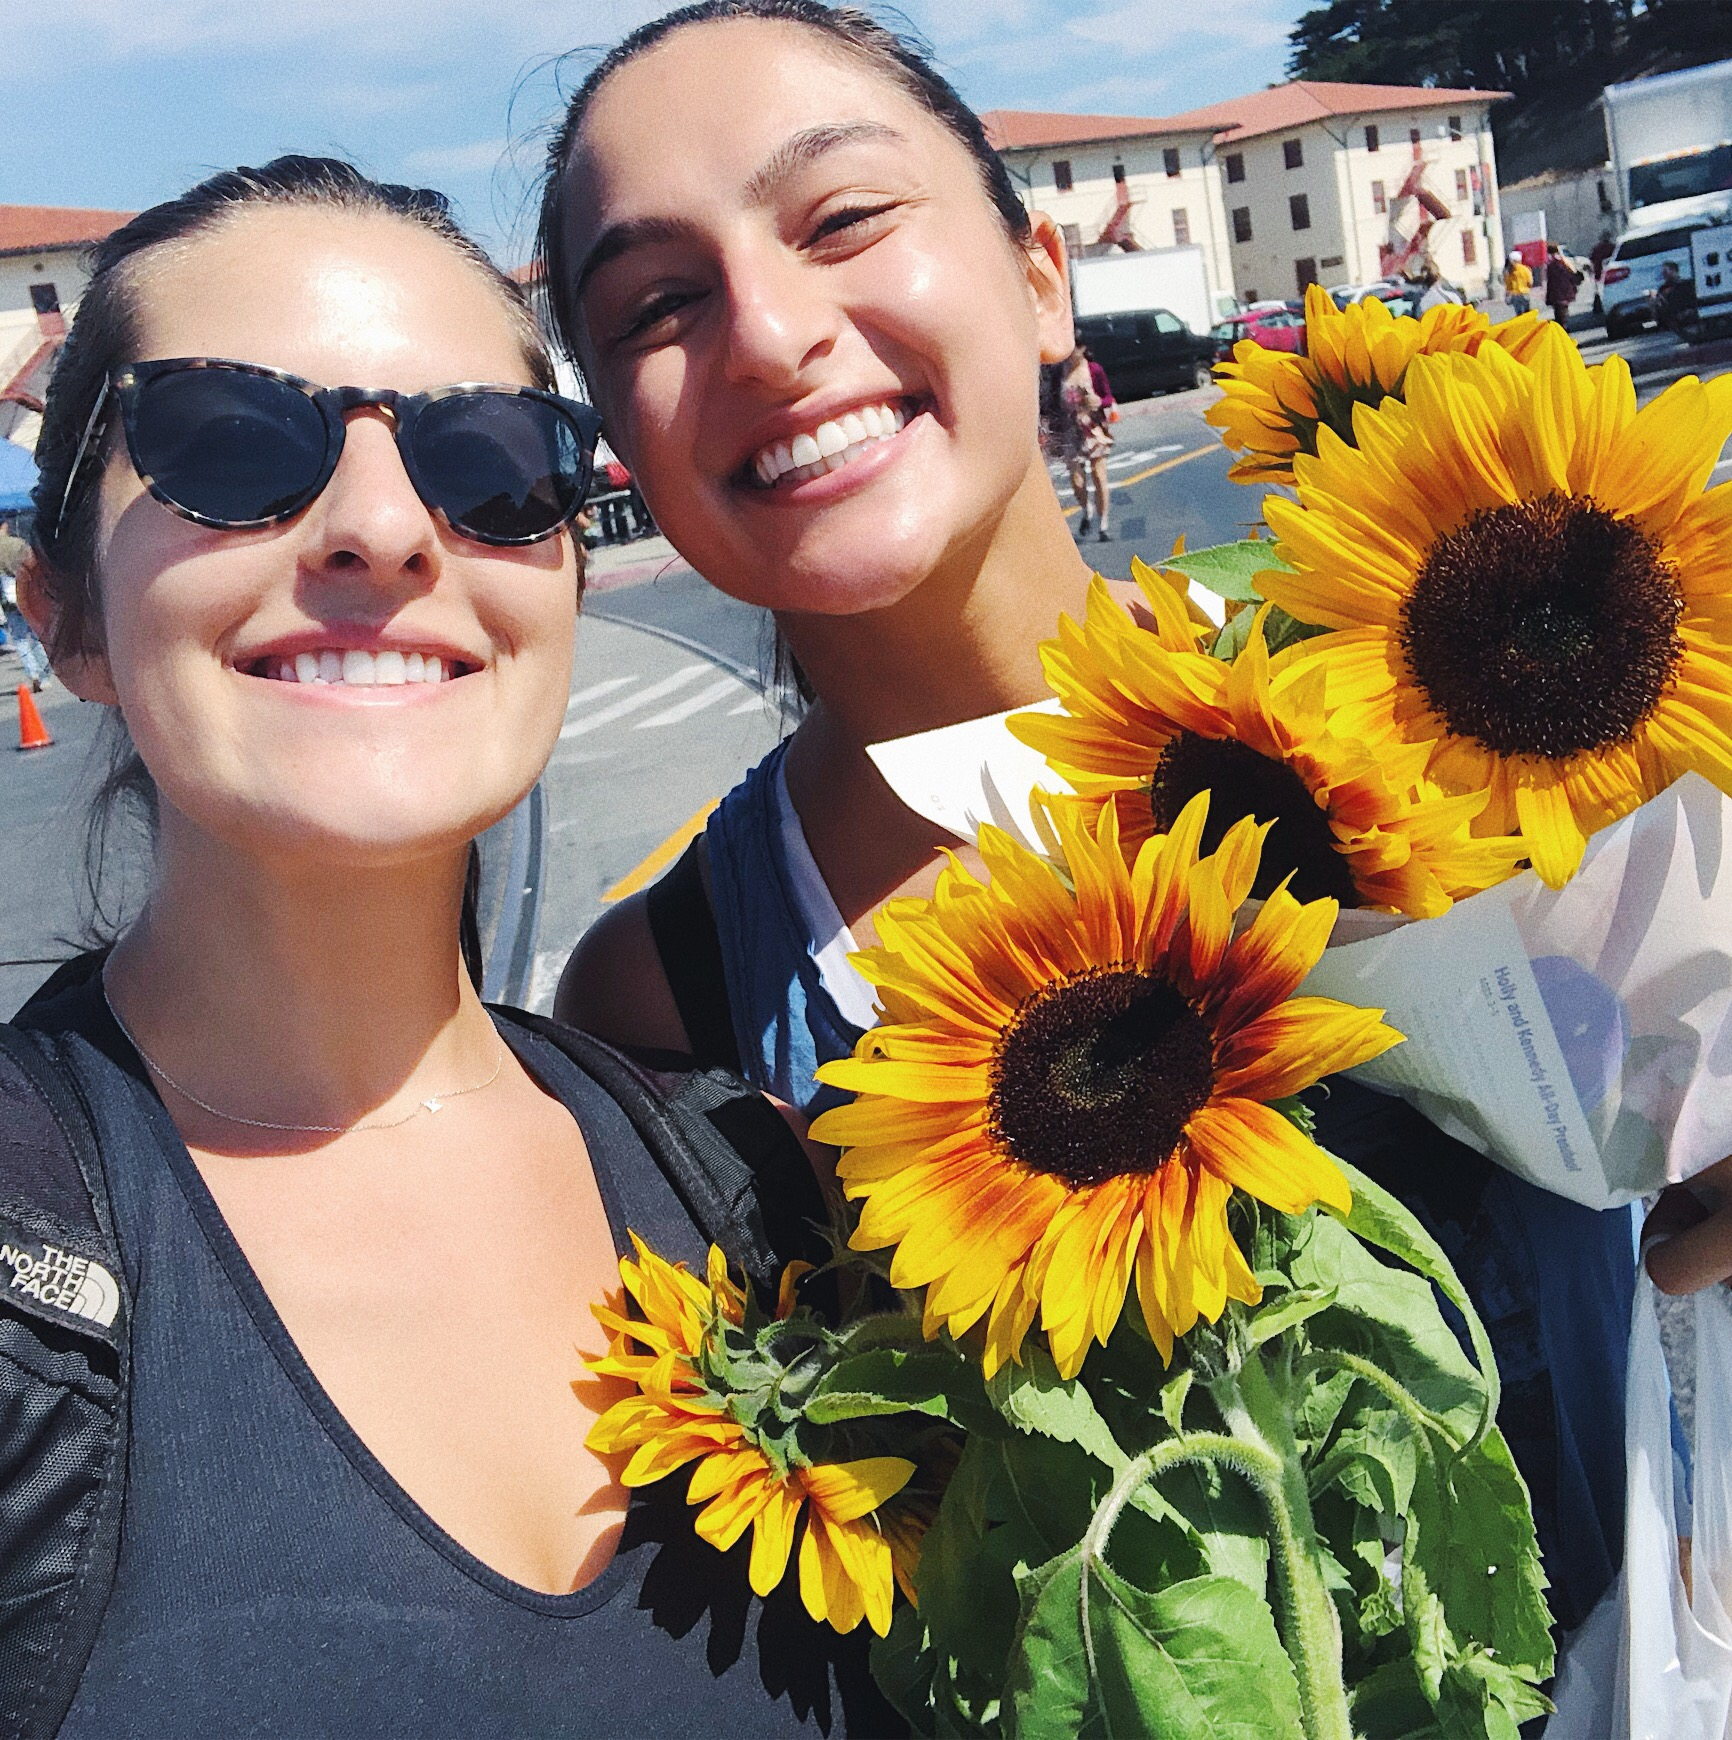 Me and my bestie picking up flowers from the farmers market.